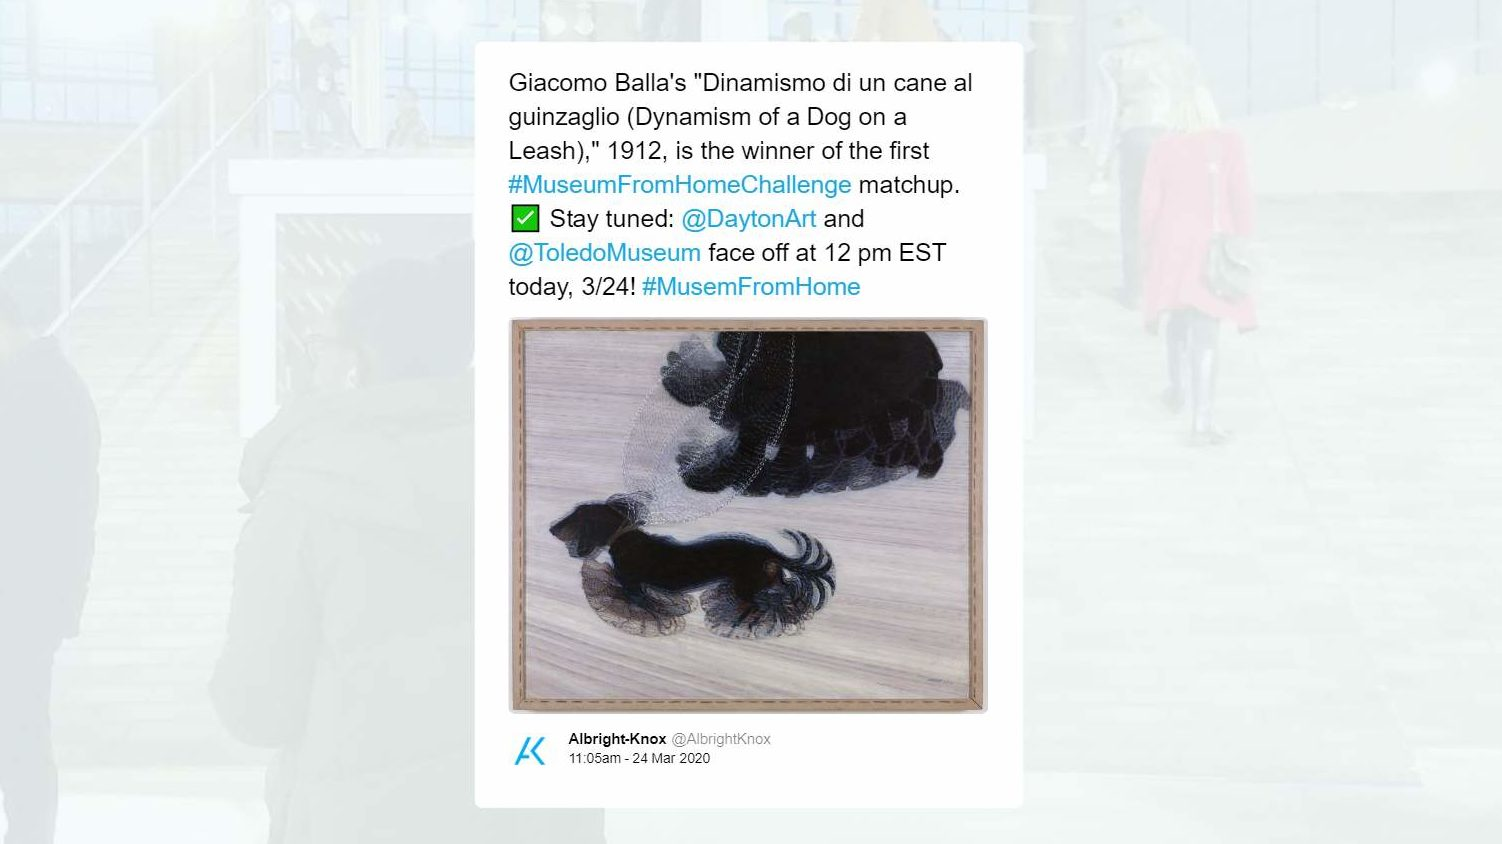 A screenshot of a tweet reading 'Giacomo Balla's 'Dinamismo di un cane al guinzaglio (Dynamism of a Dog on a Leash),' 1912, is the winner of the first #MuseumFromHomeChallenge matchup. White heavy check mark Stay tuned: @DaytonArt and @ToledoMuseum face off at 12 pm EST today, 3/24! #MusemFromHome""